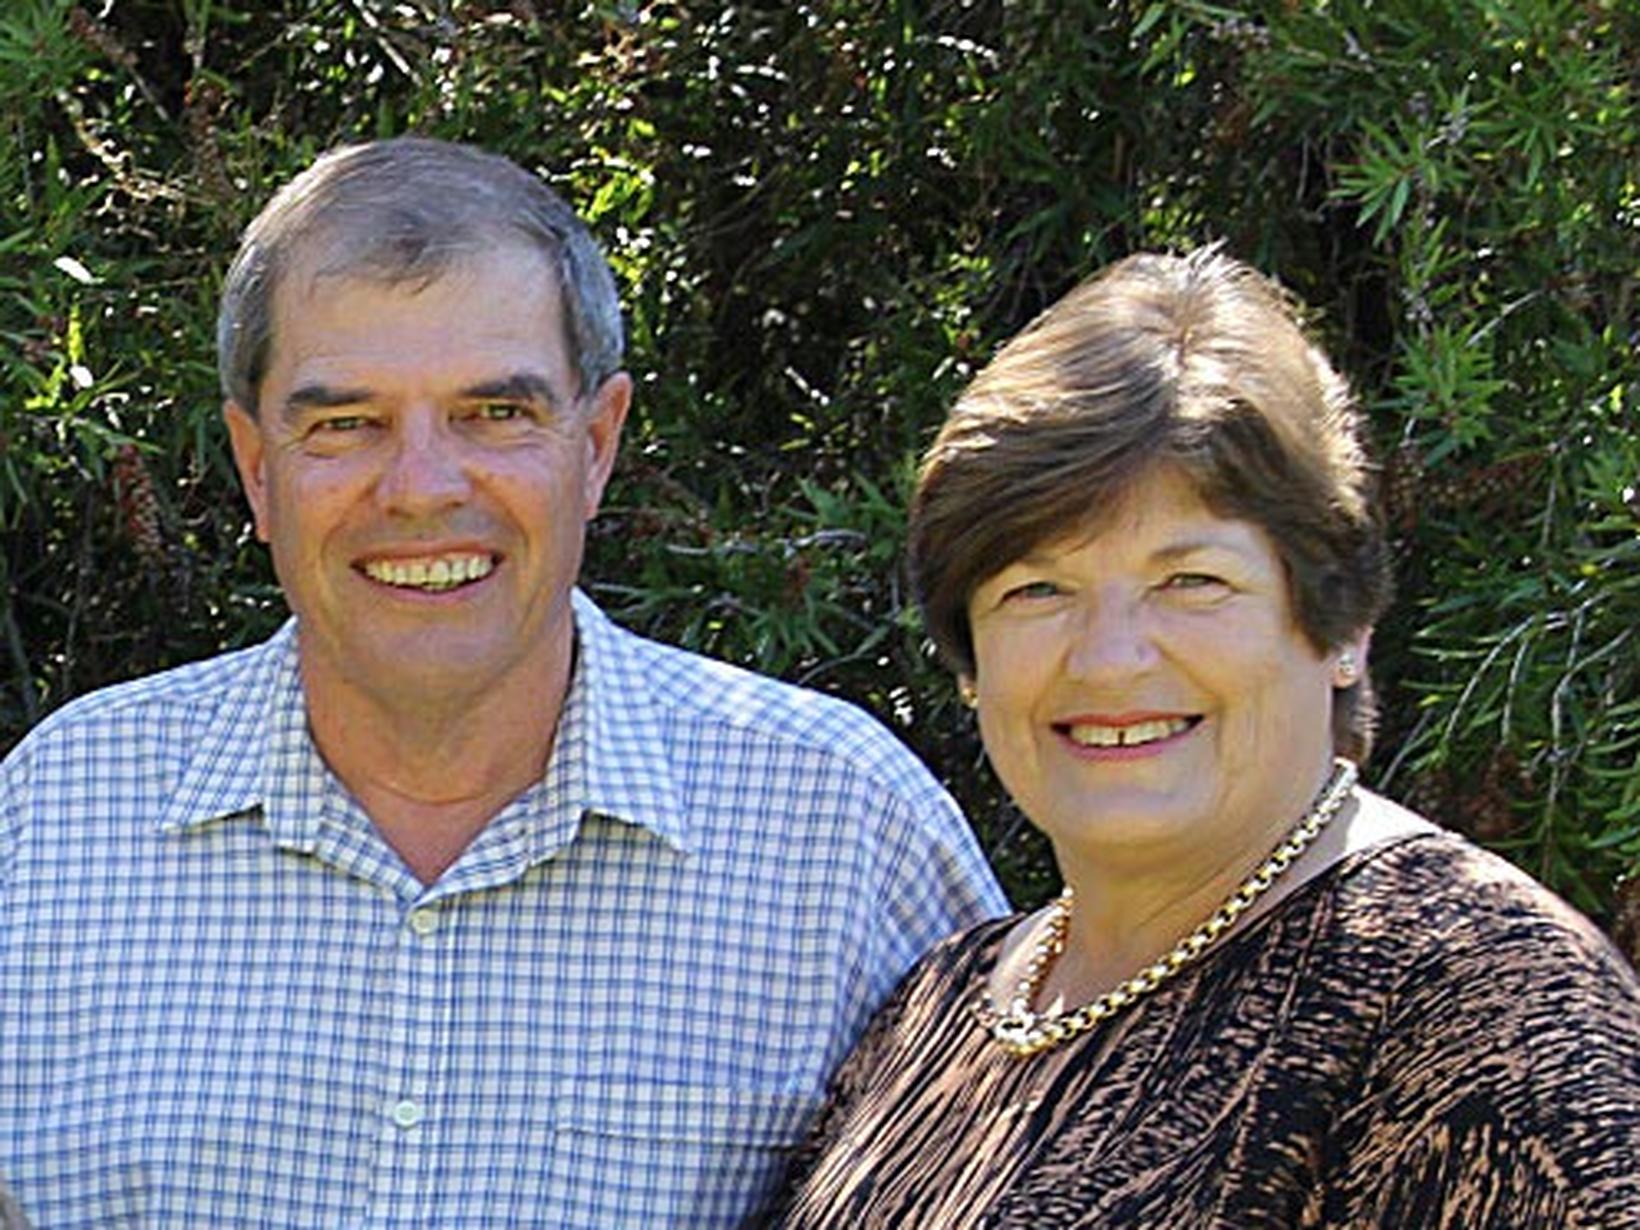 Margaret & Philip from Tamworth, New South Wales, Australia